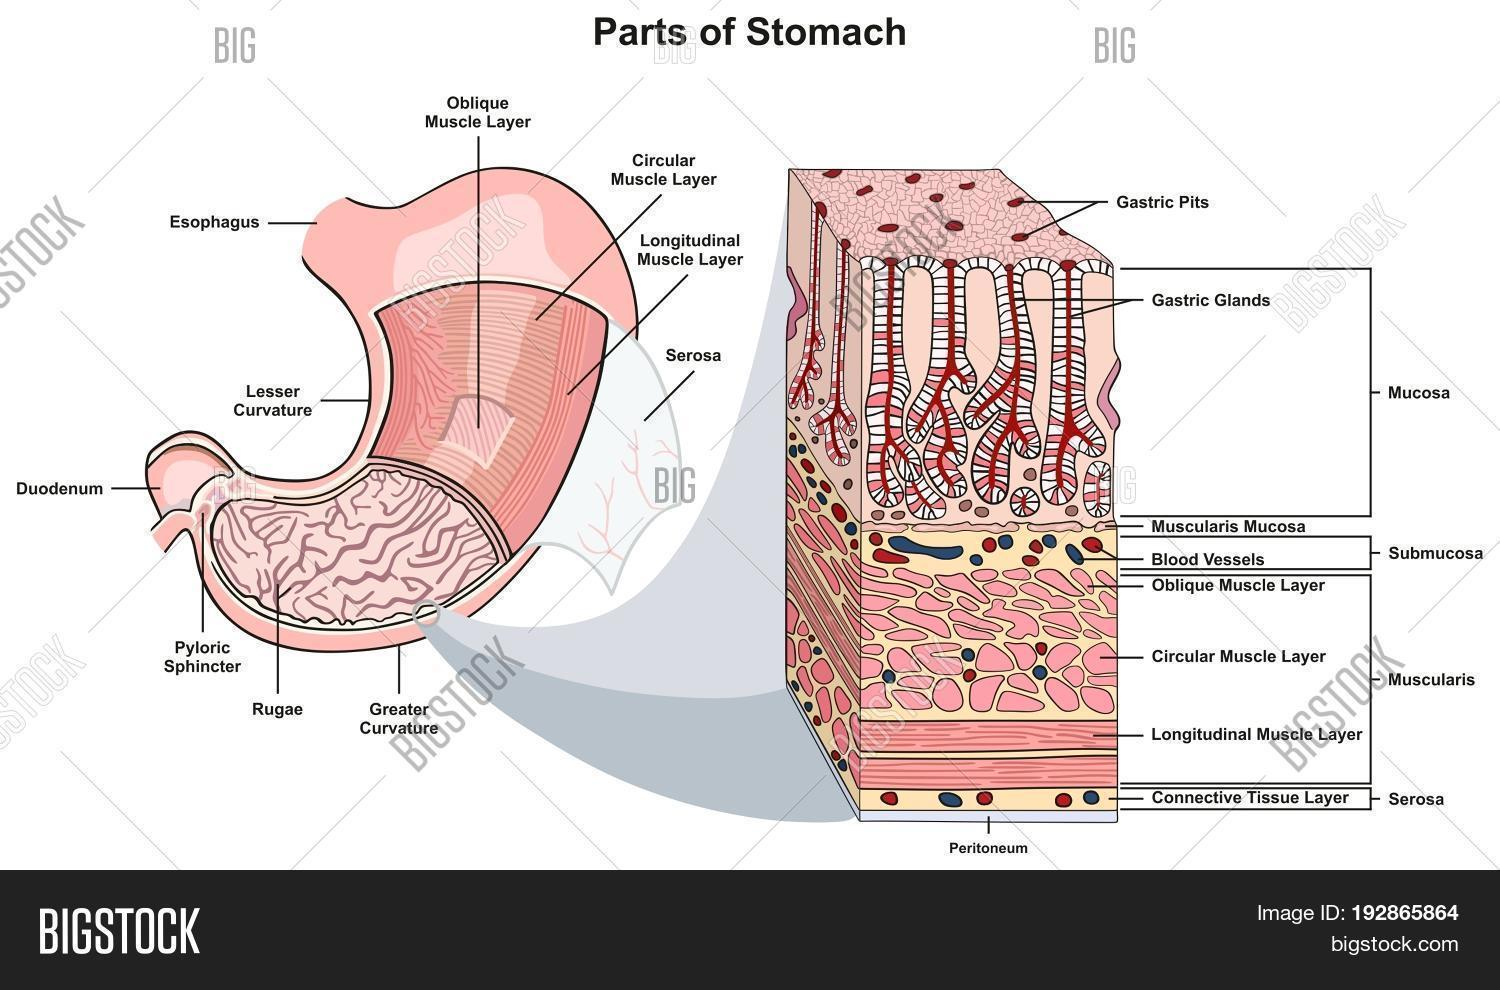 Parts Stomach Image & Photo (Free Trial) | Bigstock